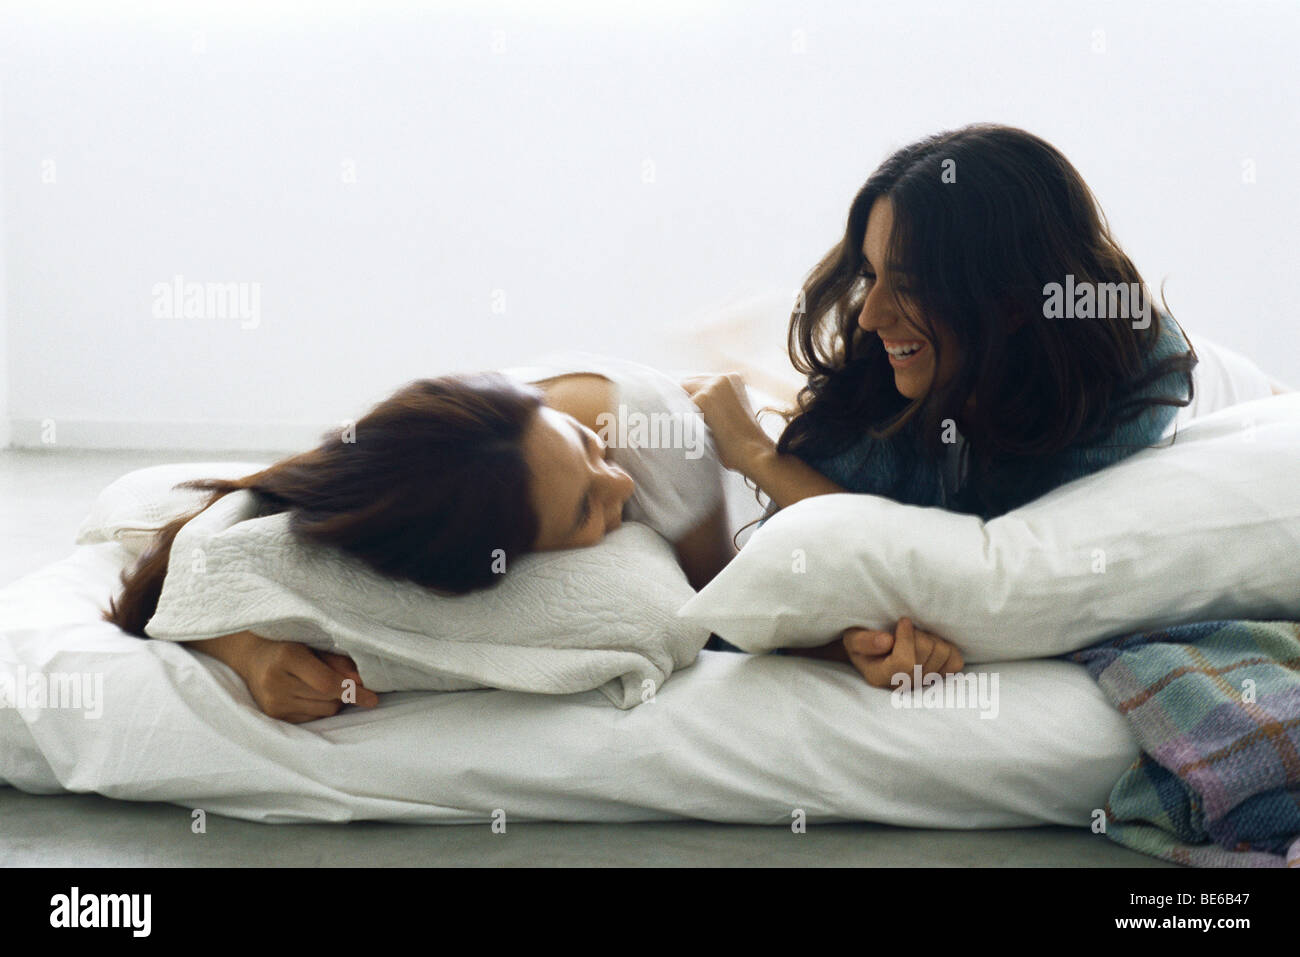 Female friends lying in bed together laughing - Stock Image